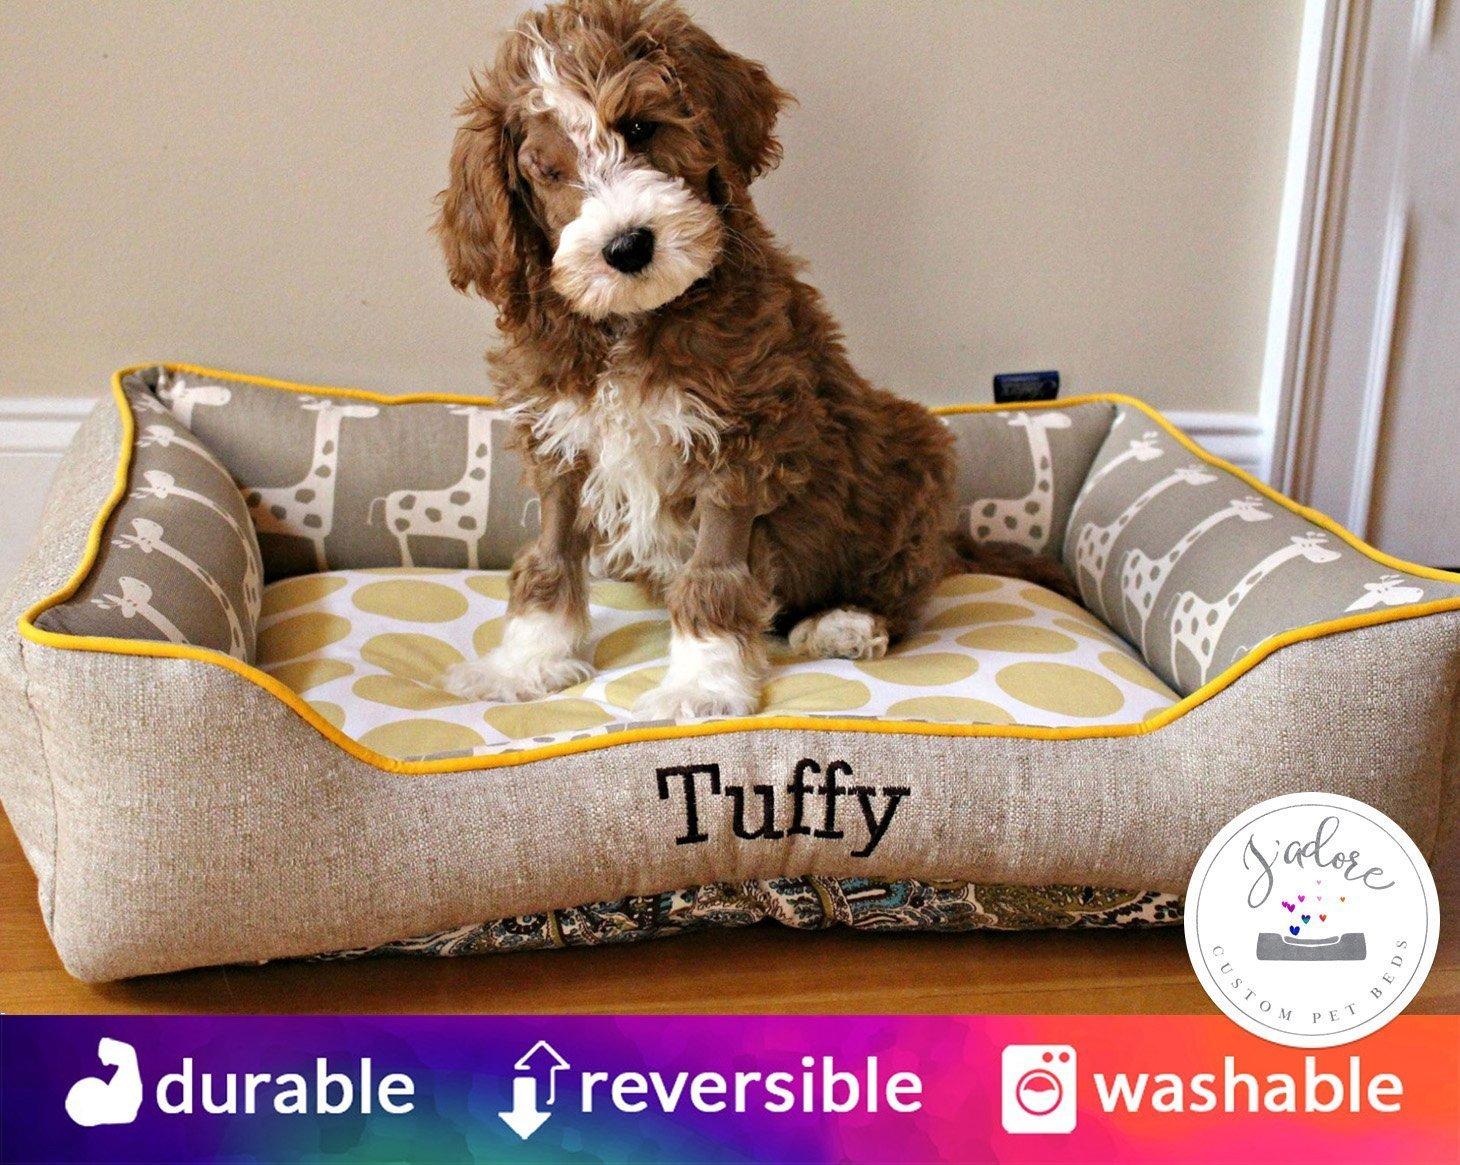 Dog Bed with Embroidery | Washable Removable Cover | Monogram Cute Nursery Giraffe Polka Dot